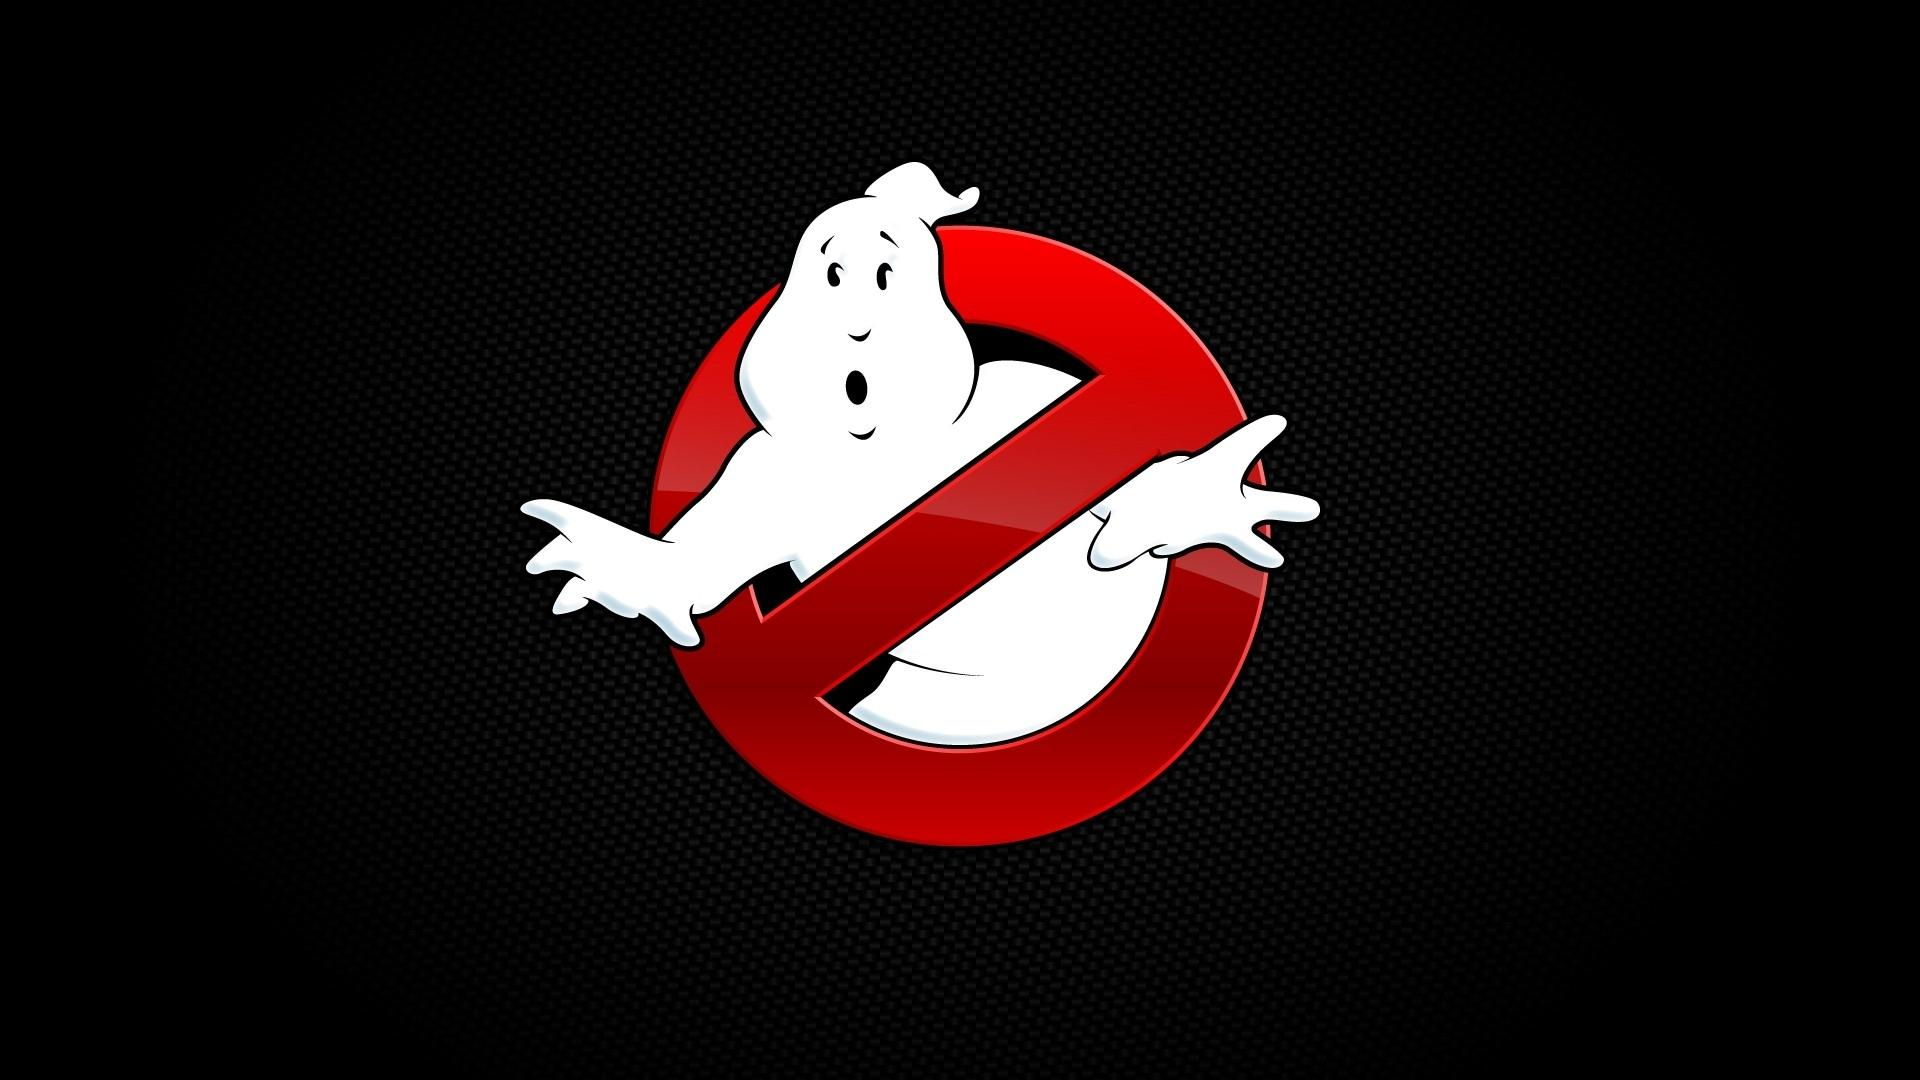 Ghostbusters 3 News